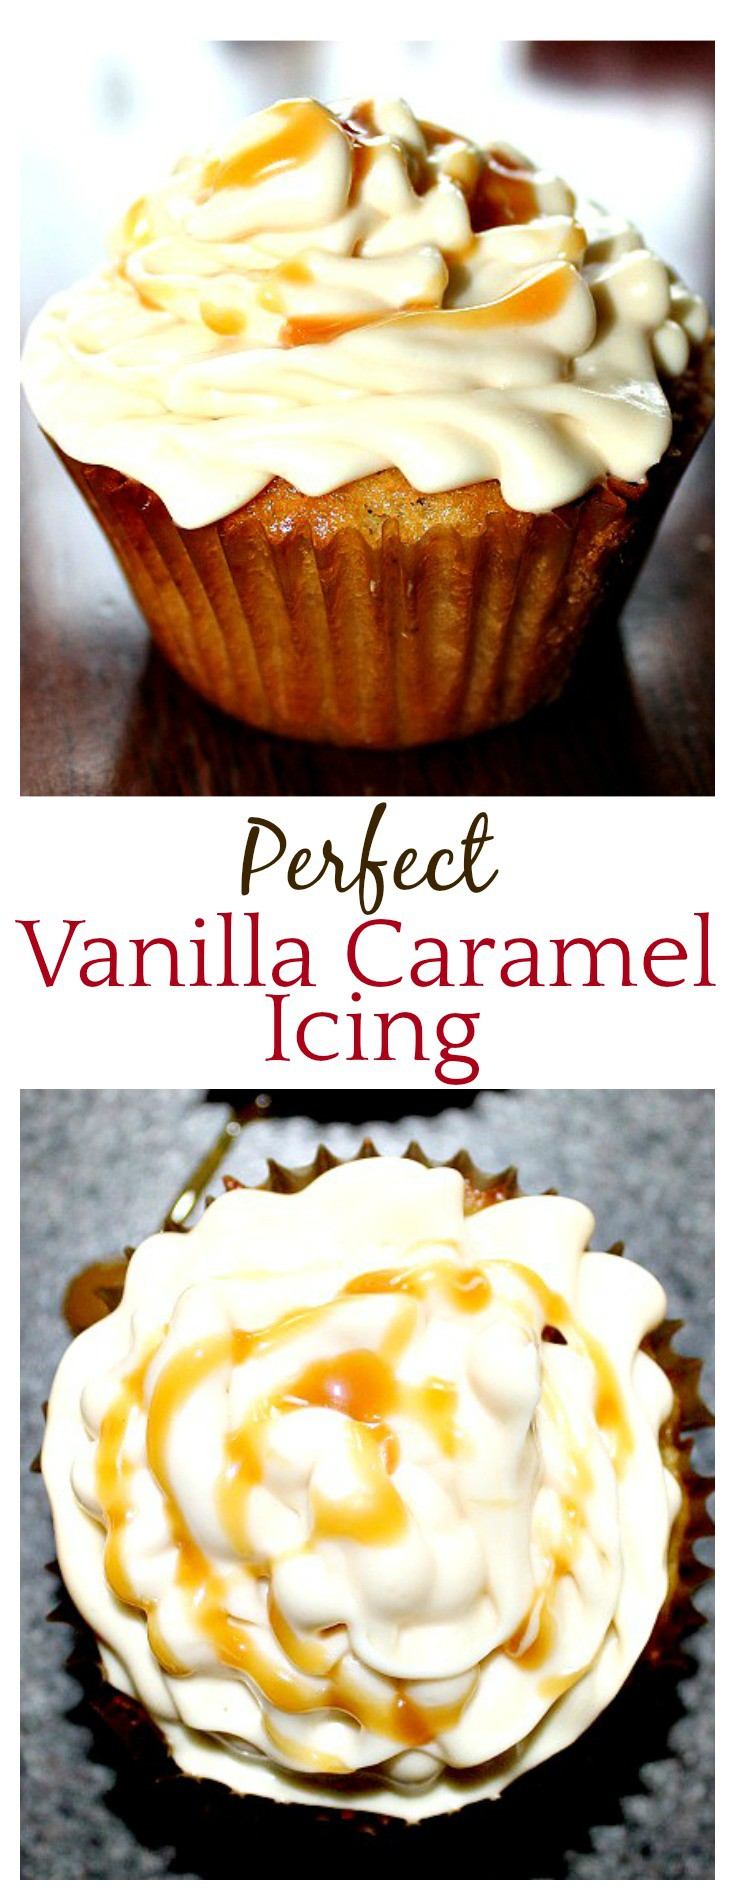 Oh my...Perfect Vanilla Caramel Icing - the title says it all! This was so easy to make (using an easy-to-fine ice cream topping!) and everyone loved it!